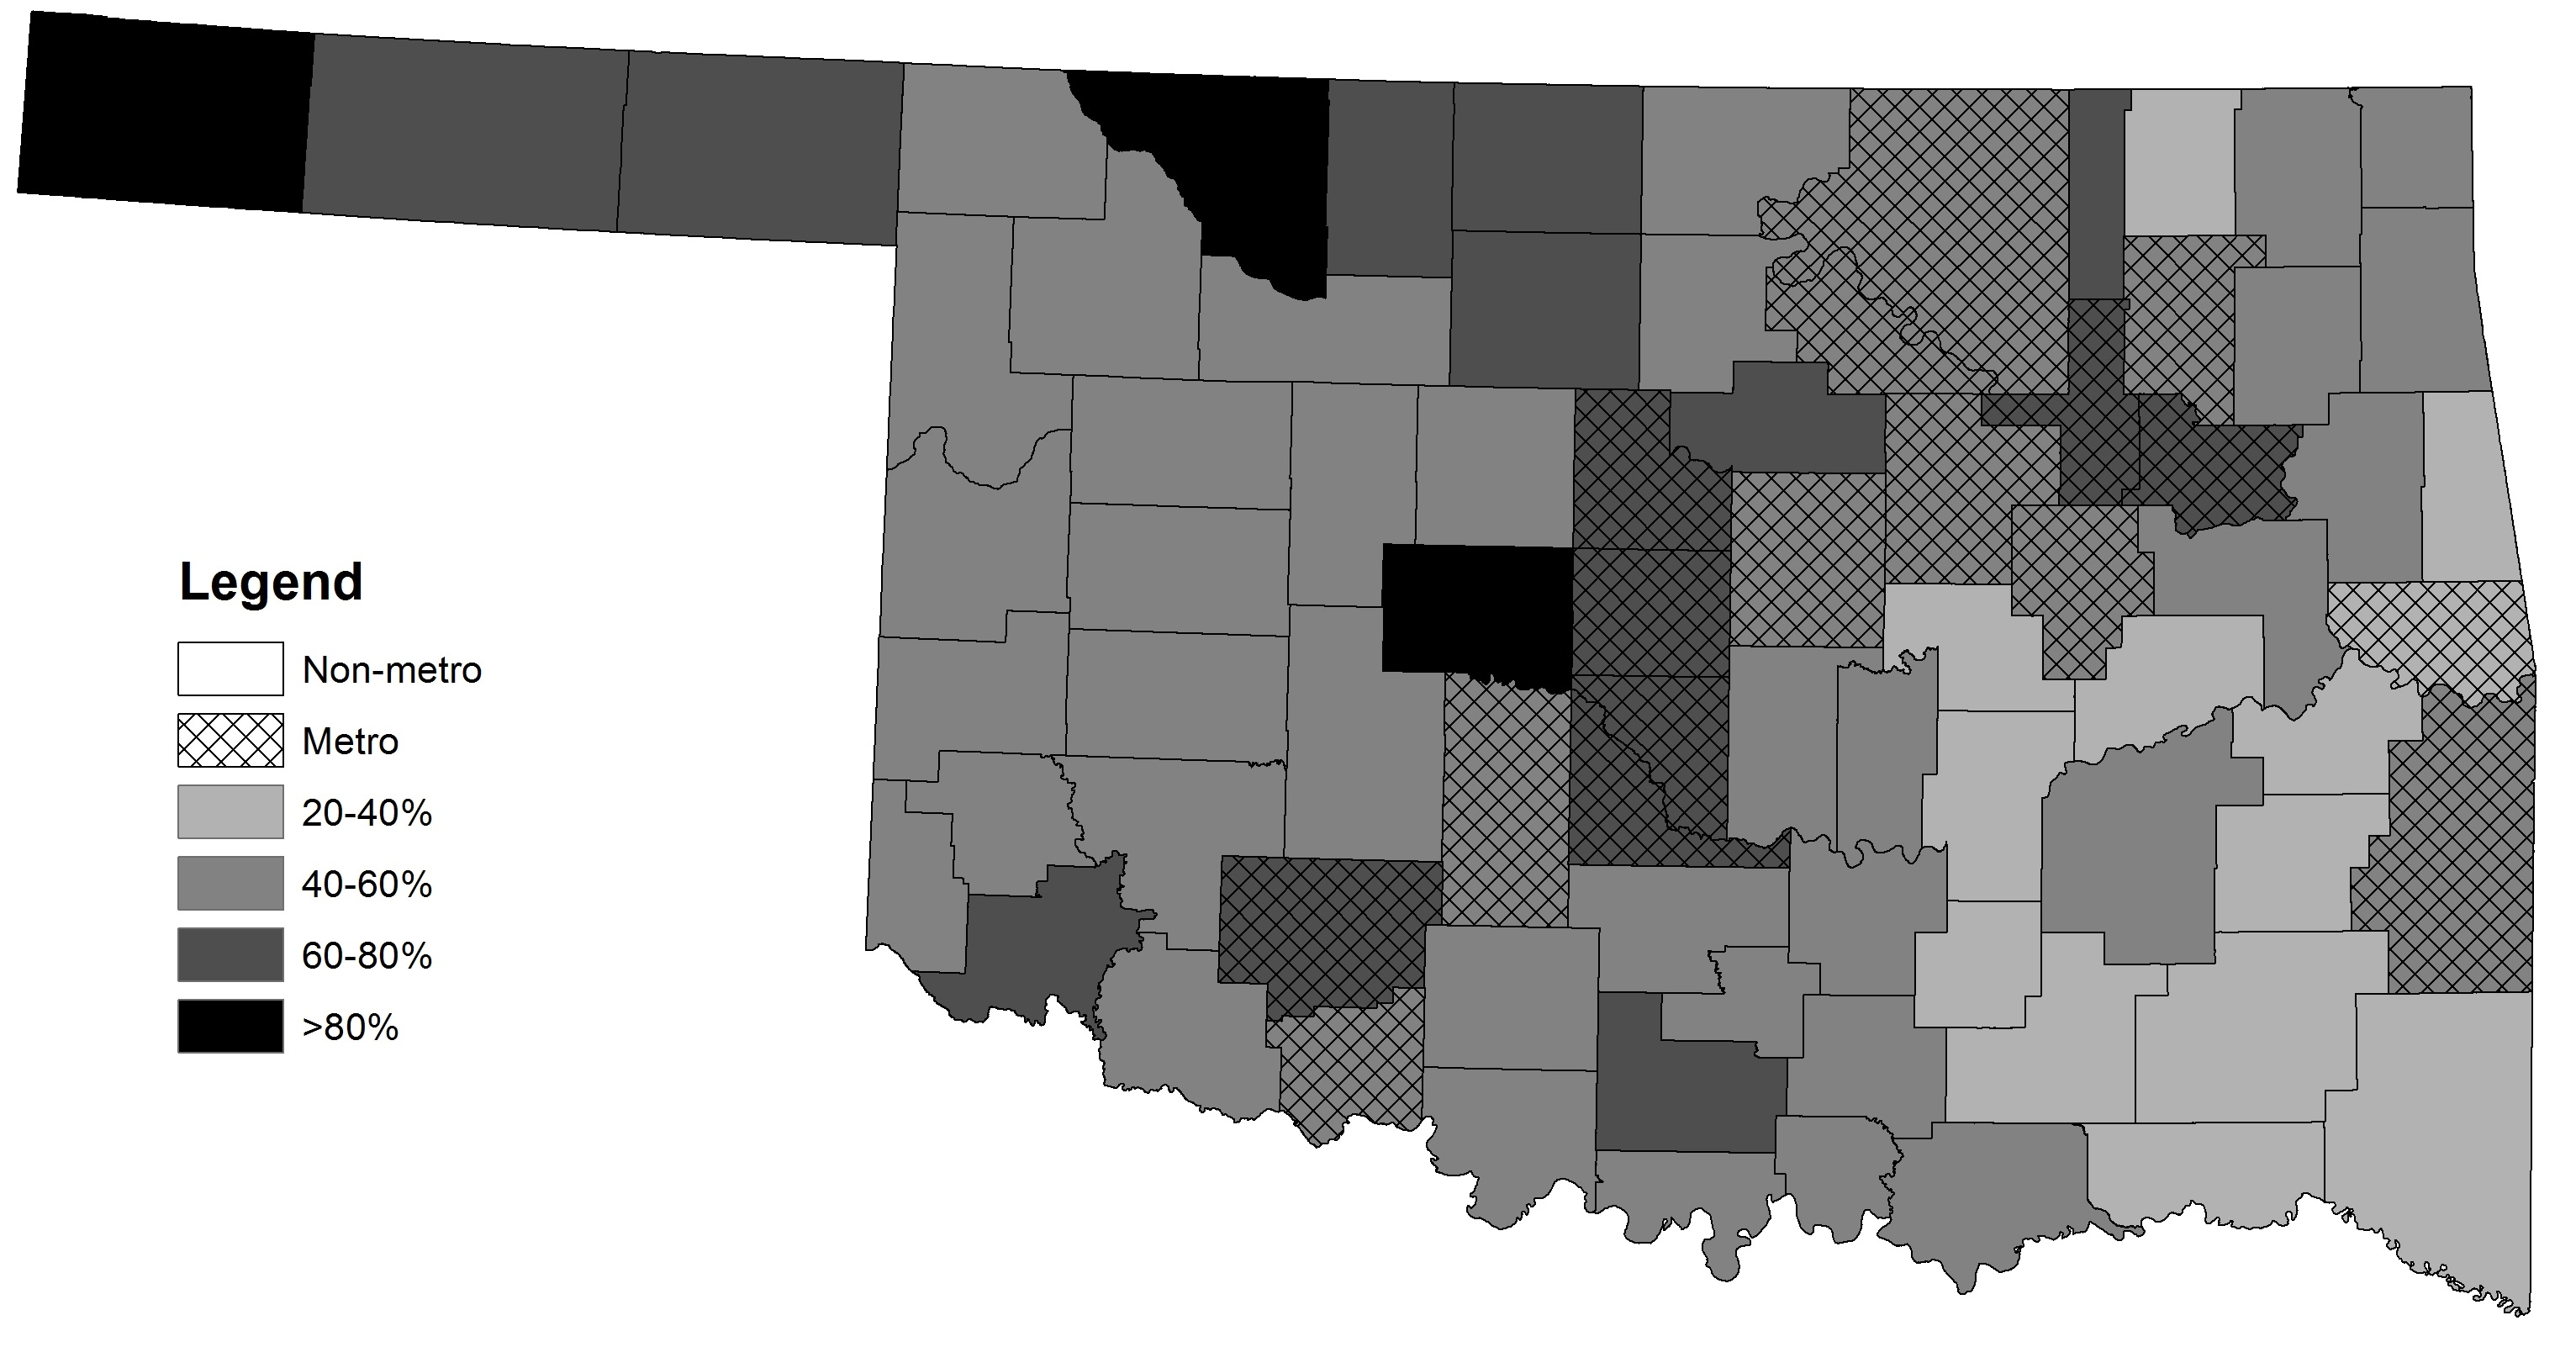 County-level Residential Broadband Adoption Rates in Oklahoma, 2013.